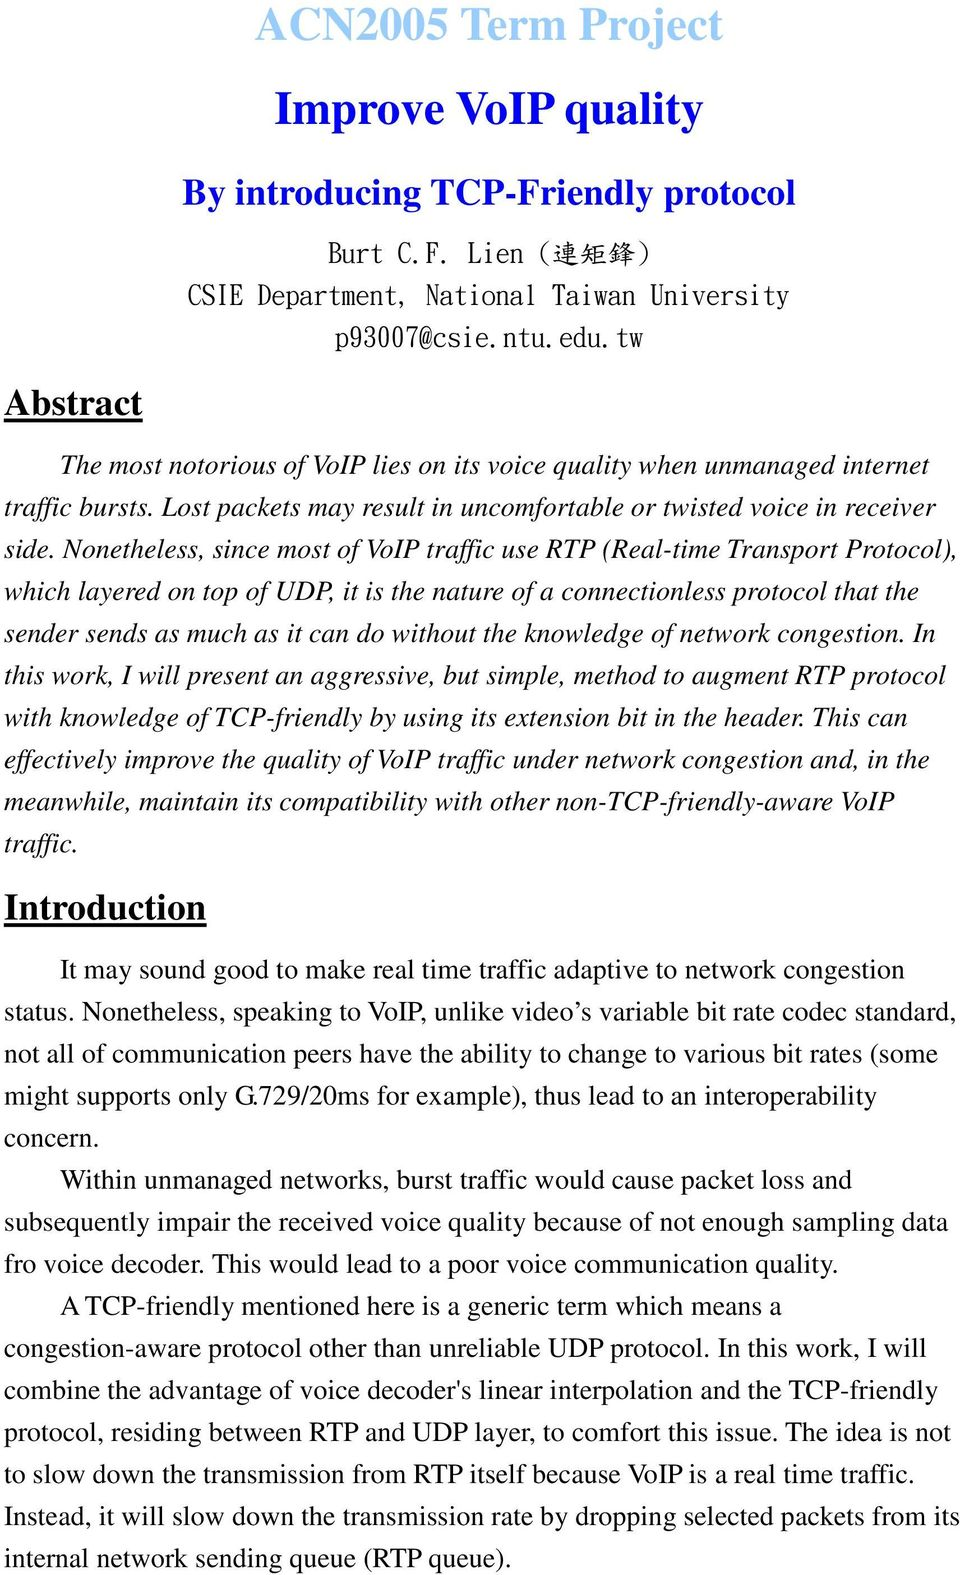 Nonetheless, since most of VoIP traffic use RTP (Real-time Transport Protocol), which layered on top of UDP, it is the nature of a connectionless protocol that the sender sends as much as it can do